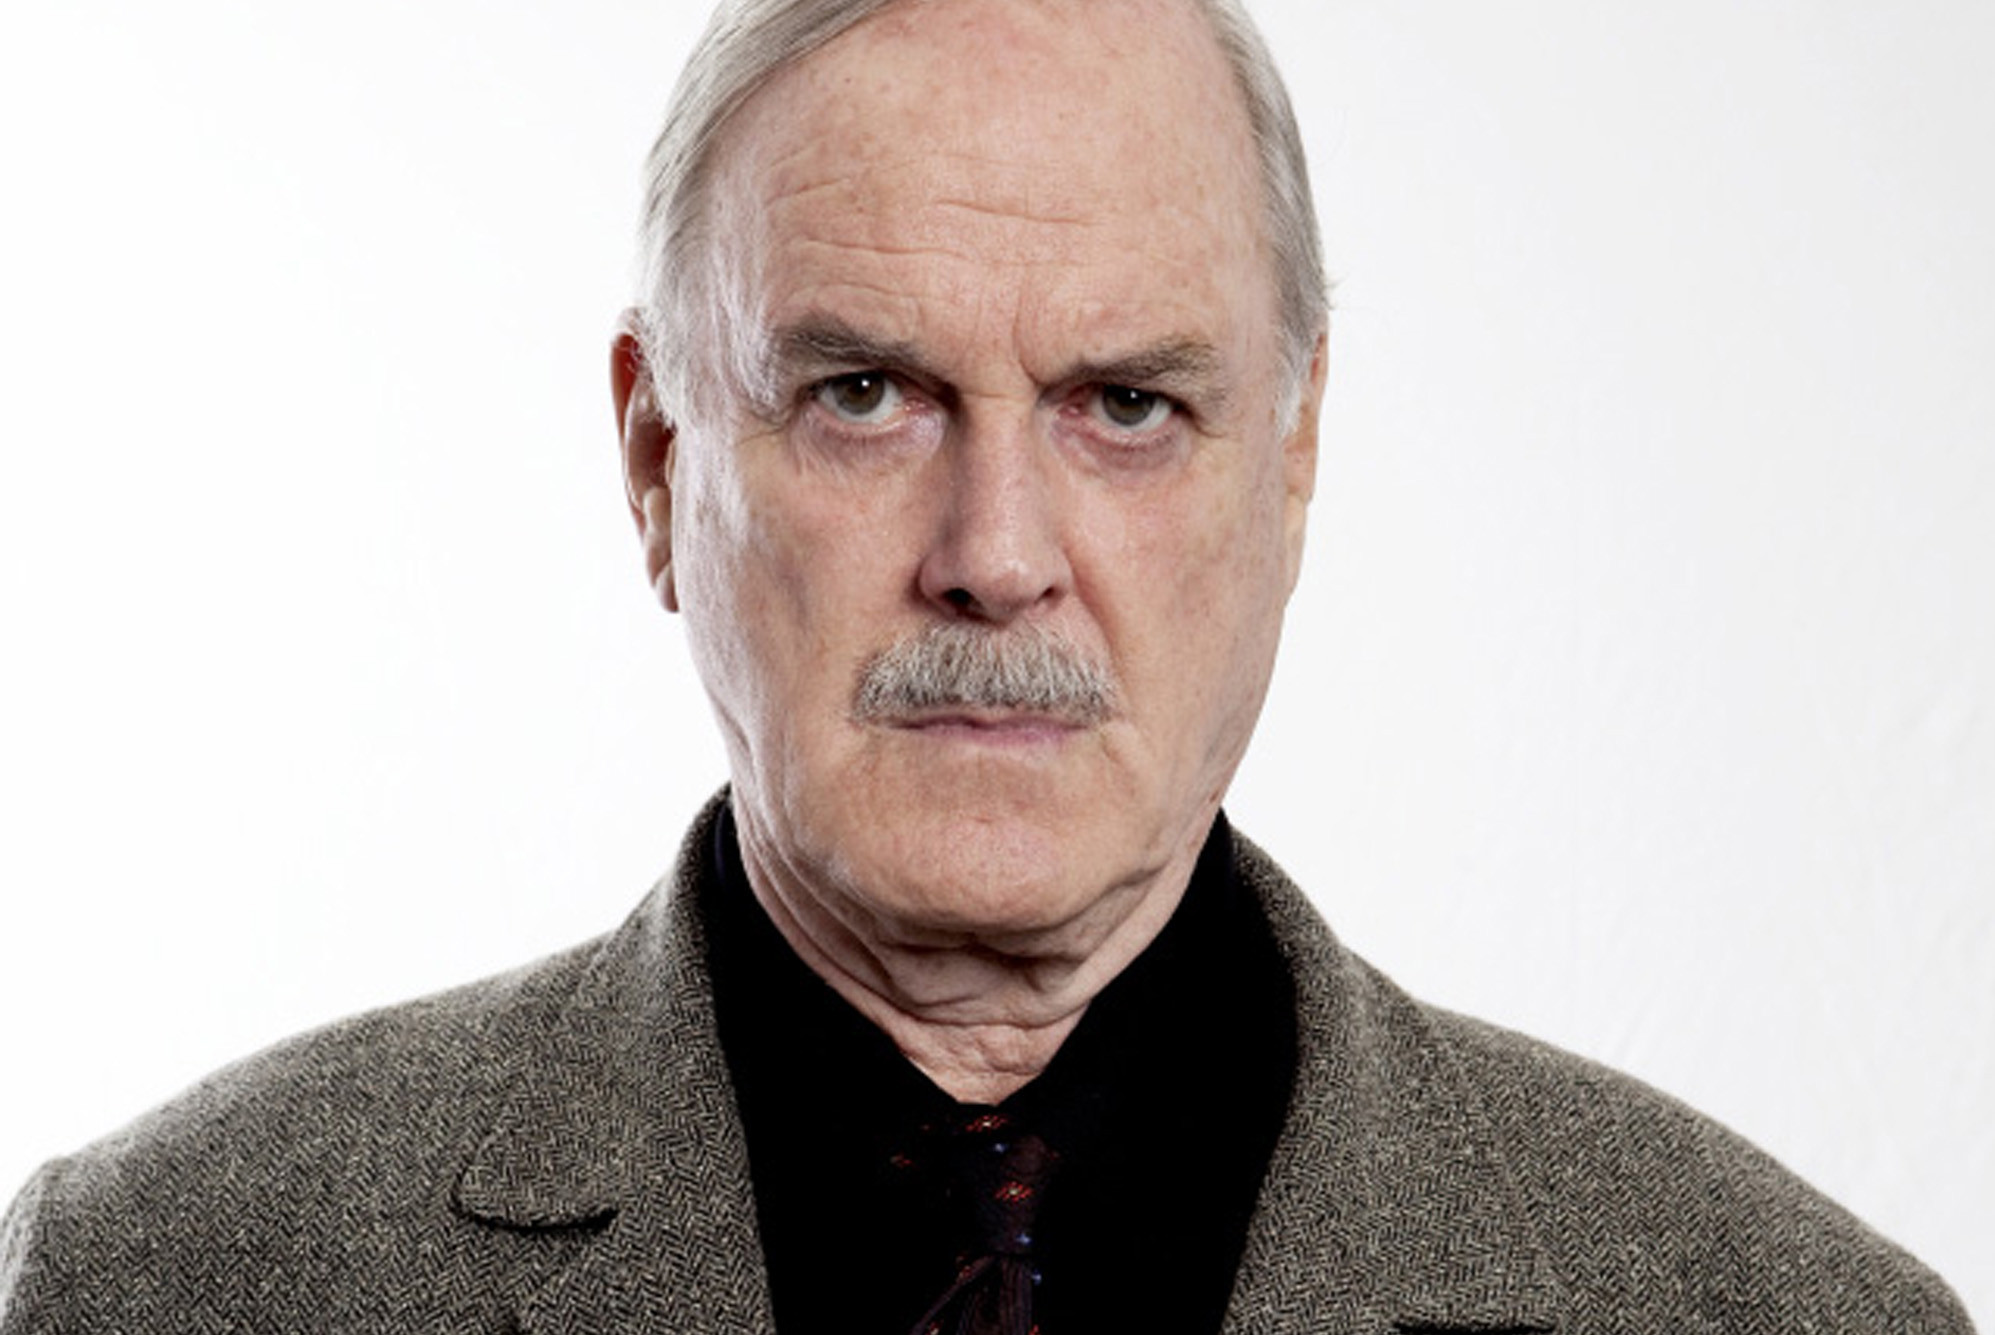 Retirement villages to make John Cleese smile